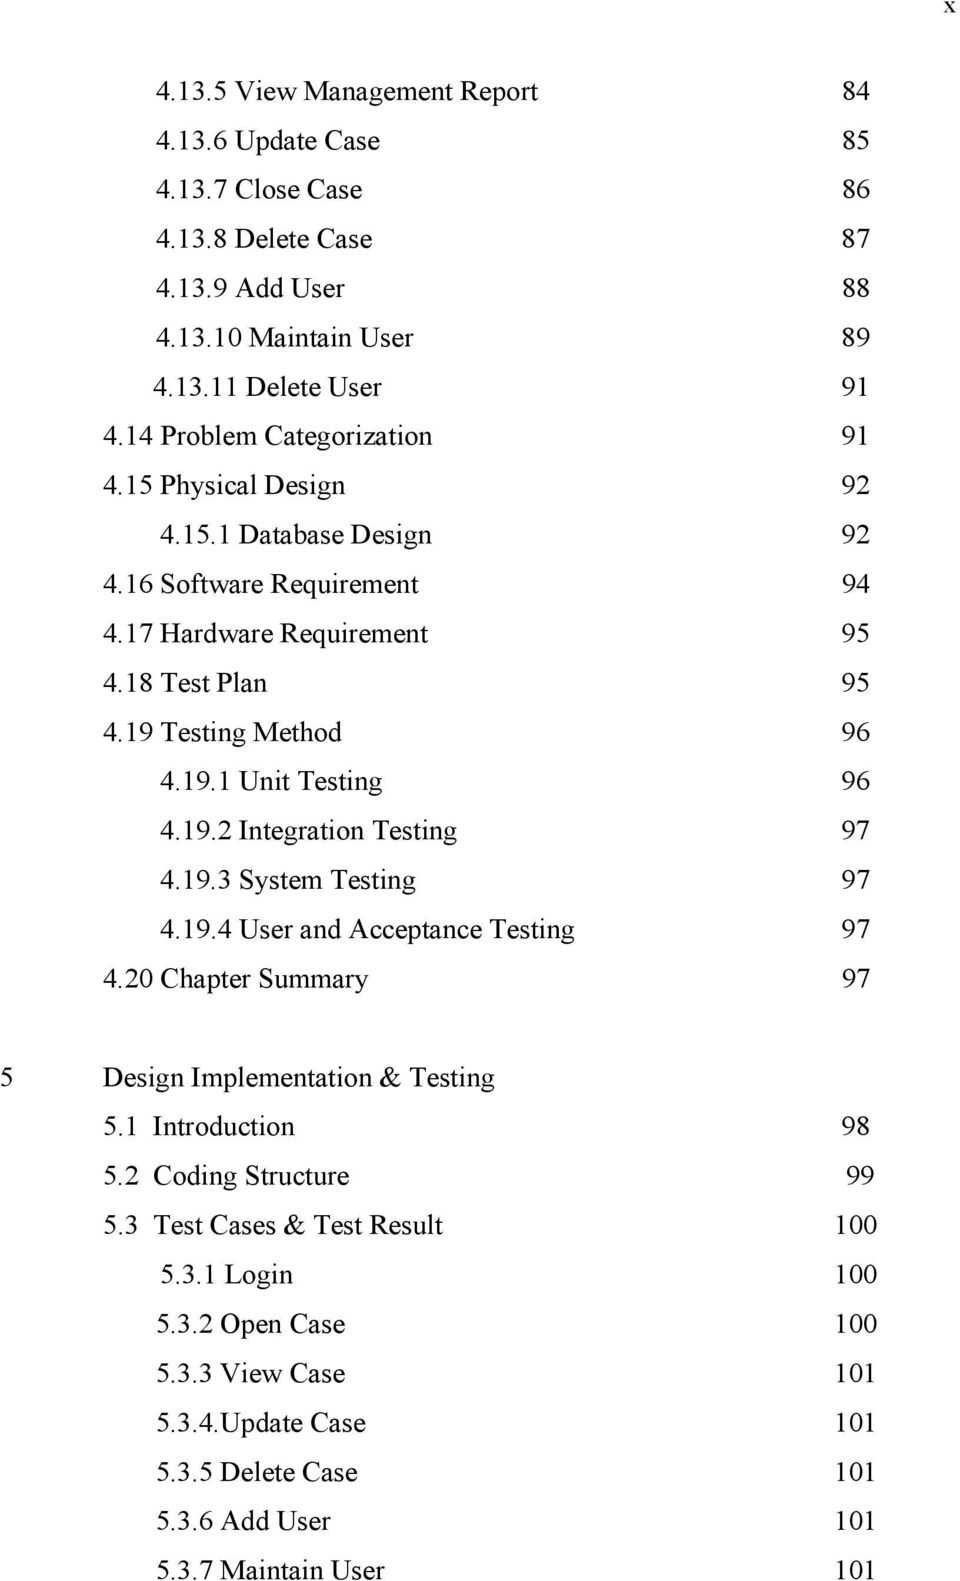 19.2 Integration Testing 97 4.19.3 System Testing 97 4.19.4 User and Acceptance Testing 97 4.20 Chapter Summary 97 5 Design Implementation & Testing 5.1 Introduction 98 5.